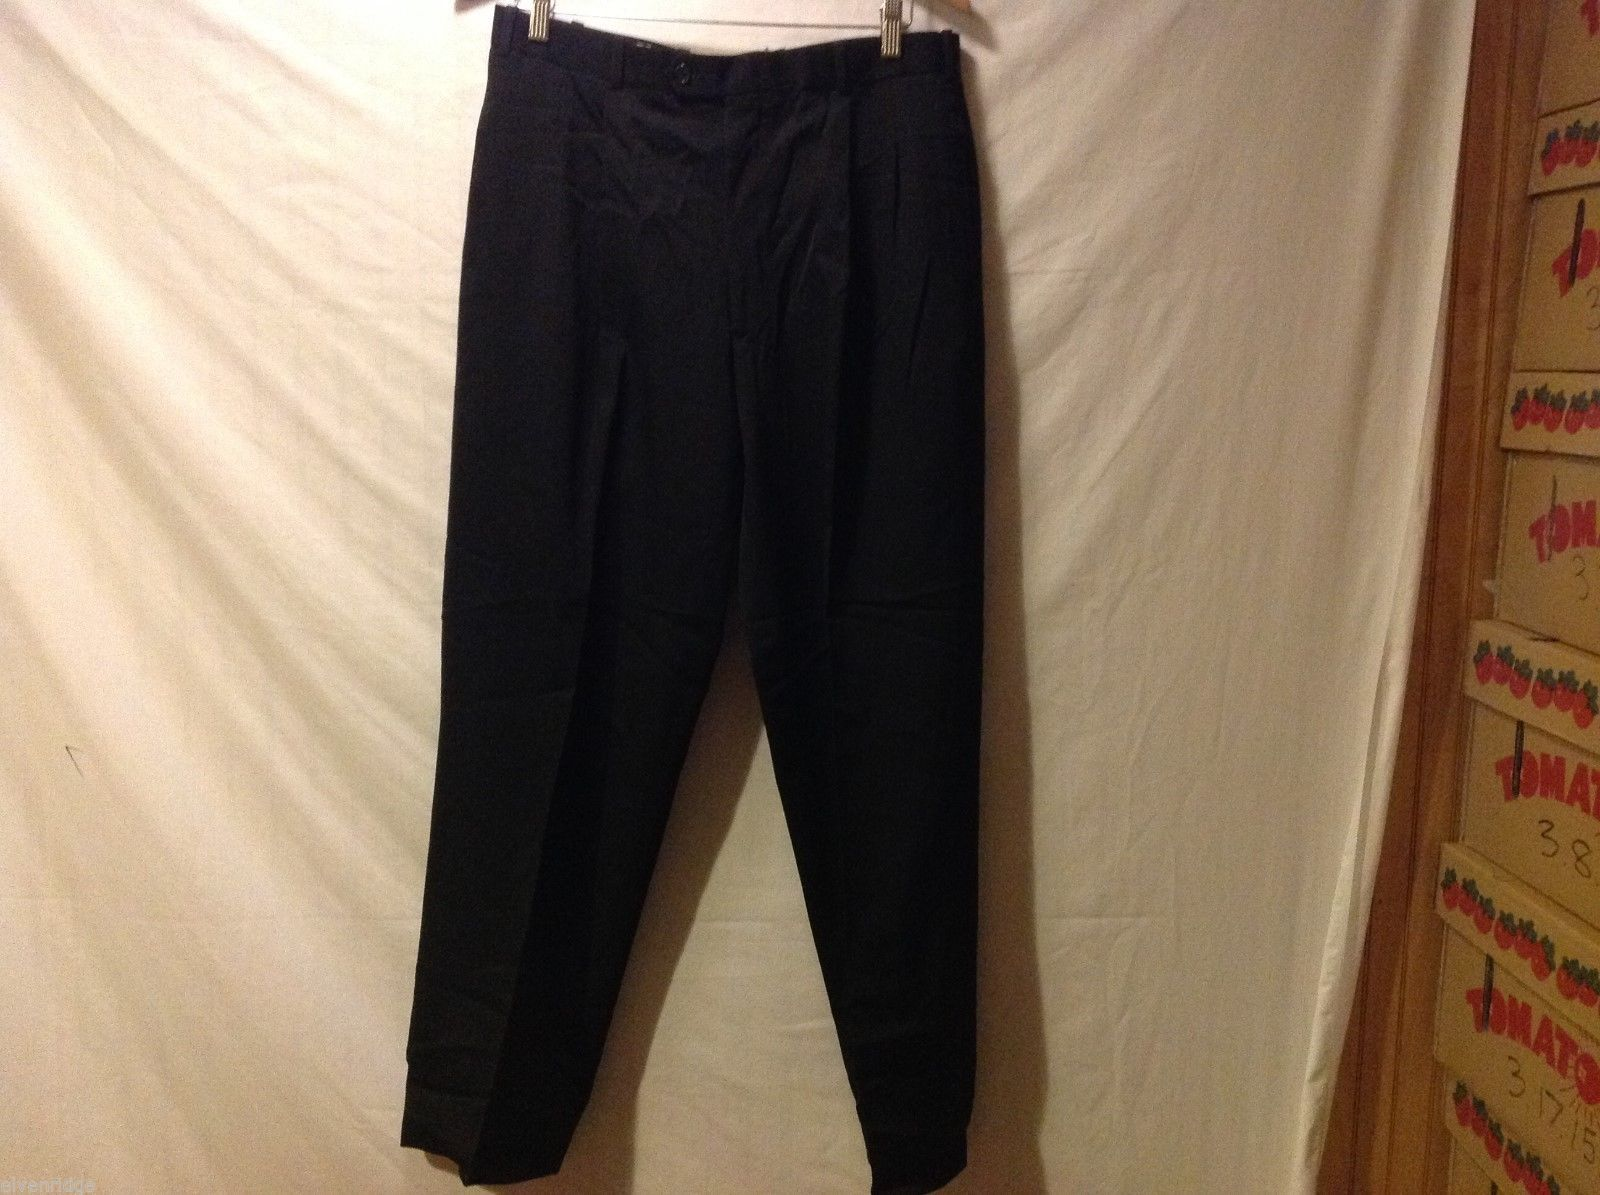 Jeremy Smythe Black Dress Pants, Size 34R